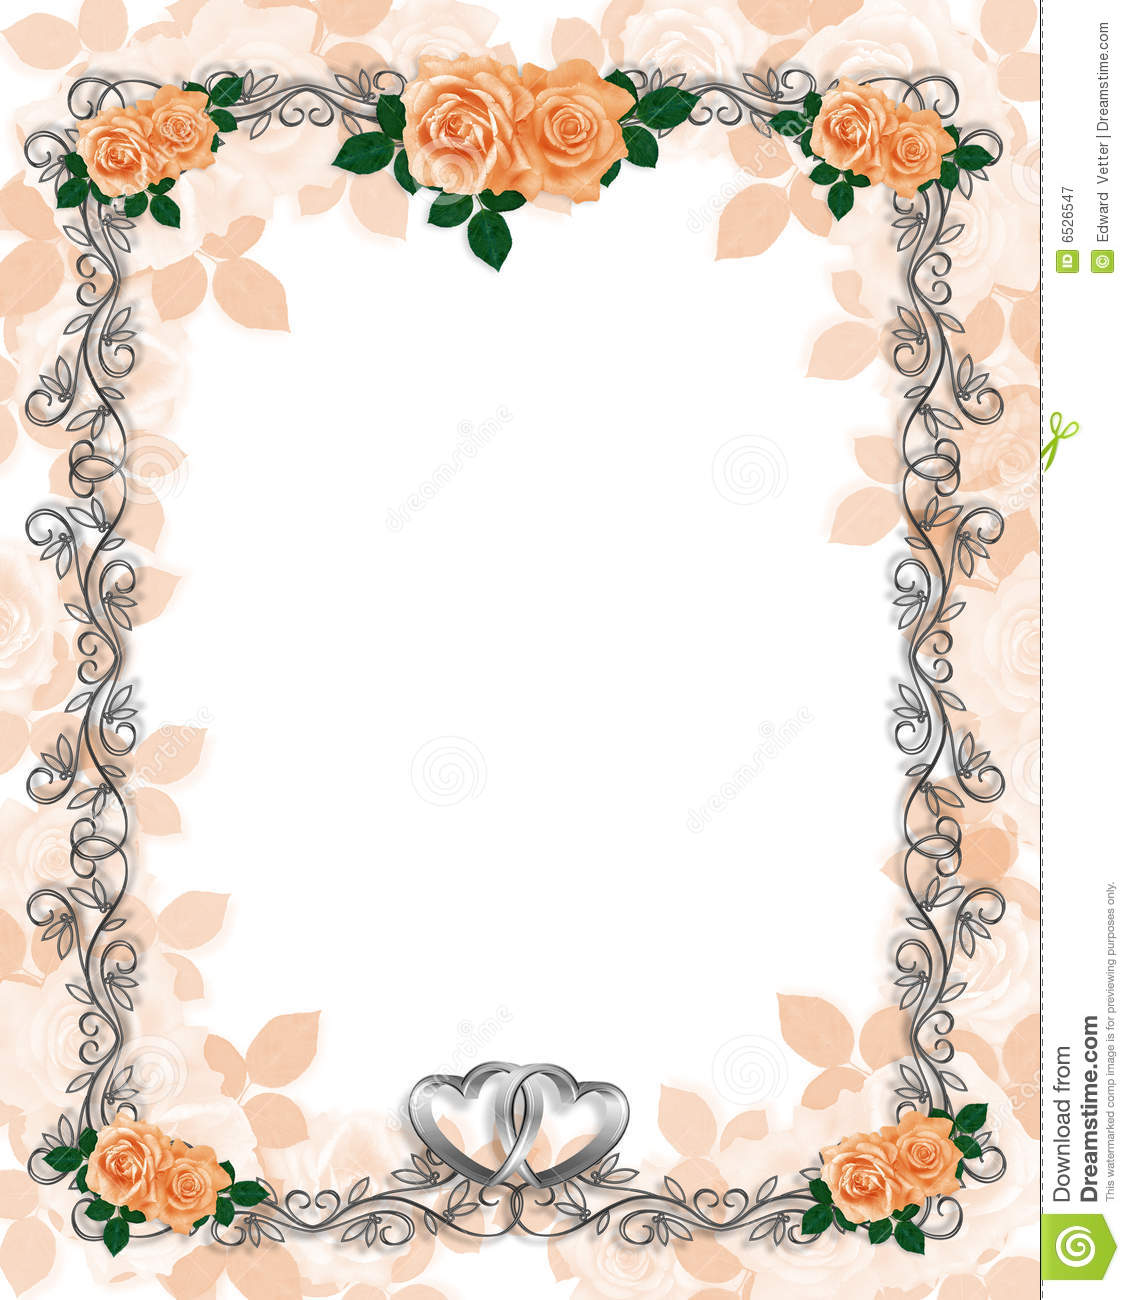 Roses Template Wedding Invitation Peach Royalty Free – Free Printable Blank Wedding Invitation Templates